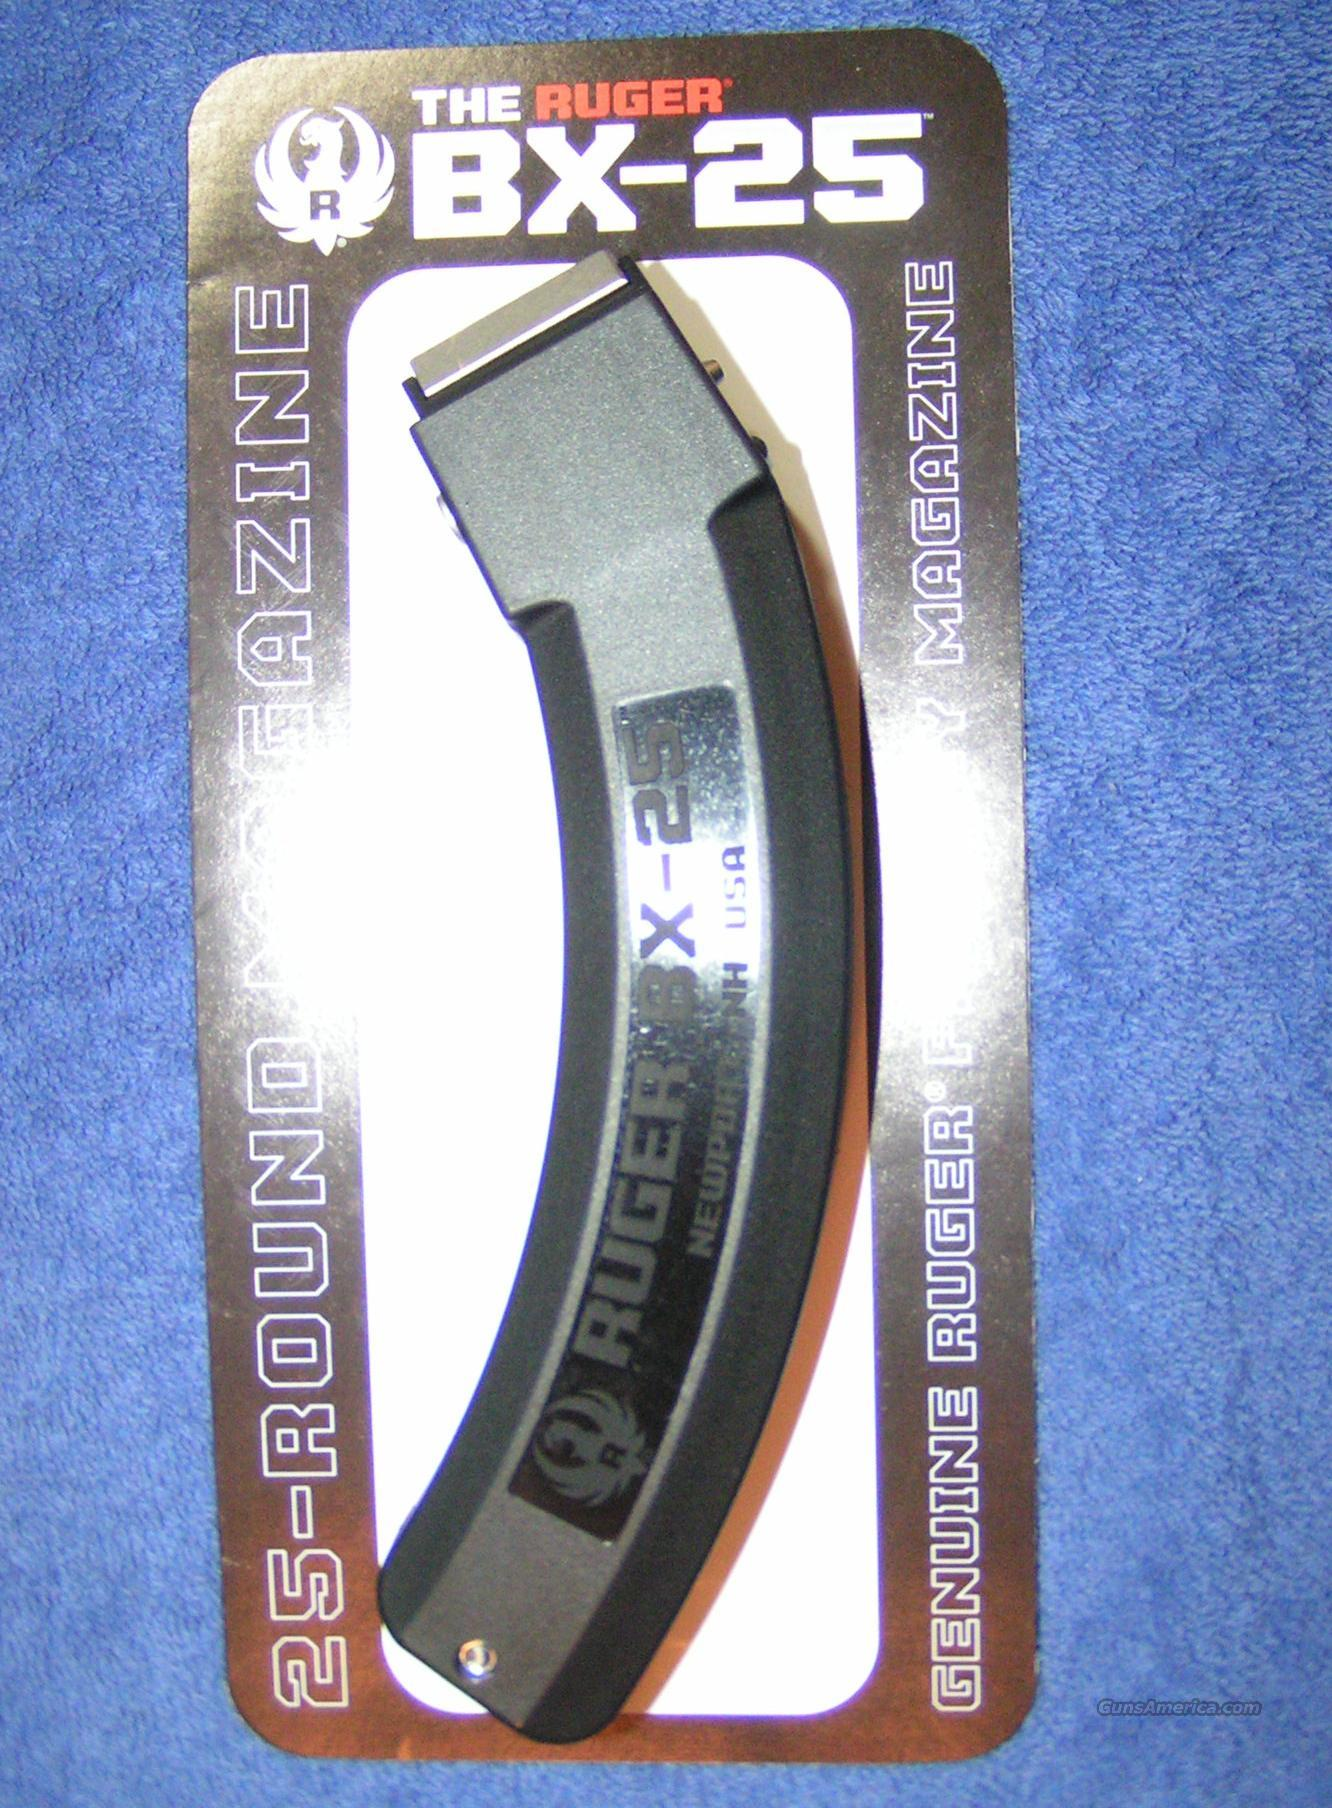 10/22 mag Ruger 25 rd BX-25 1022 $36 Free ship  Non-Guns > Magazines & Clips > Rifle Magazines > 10/22